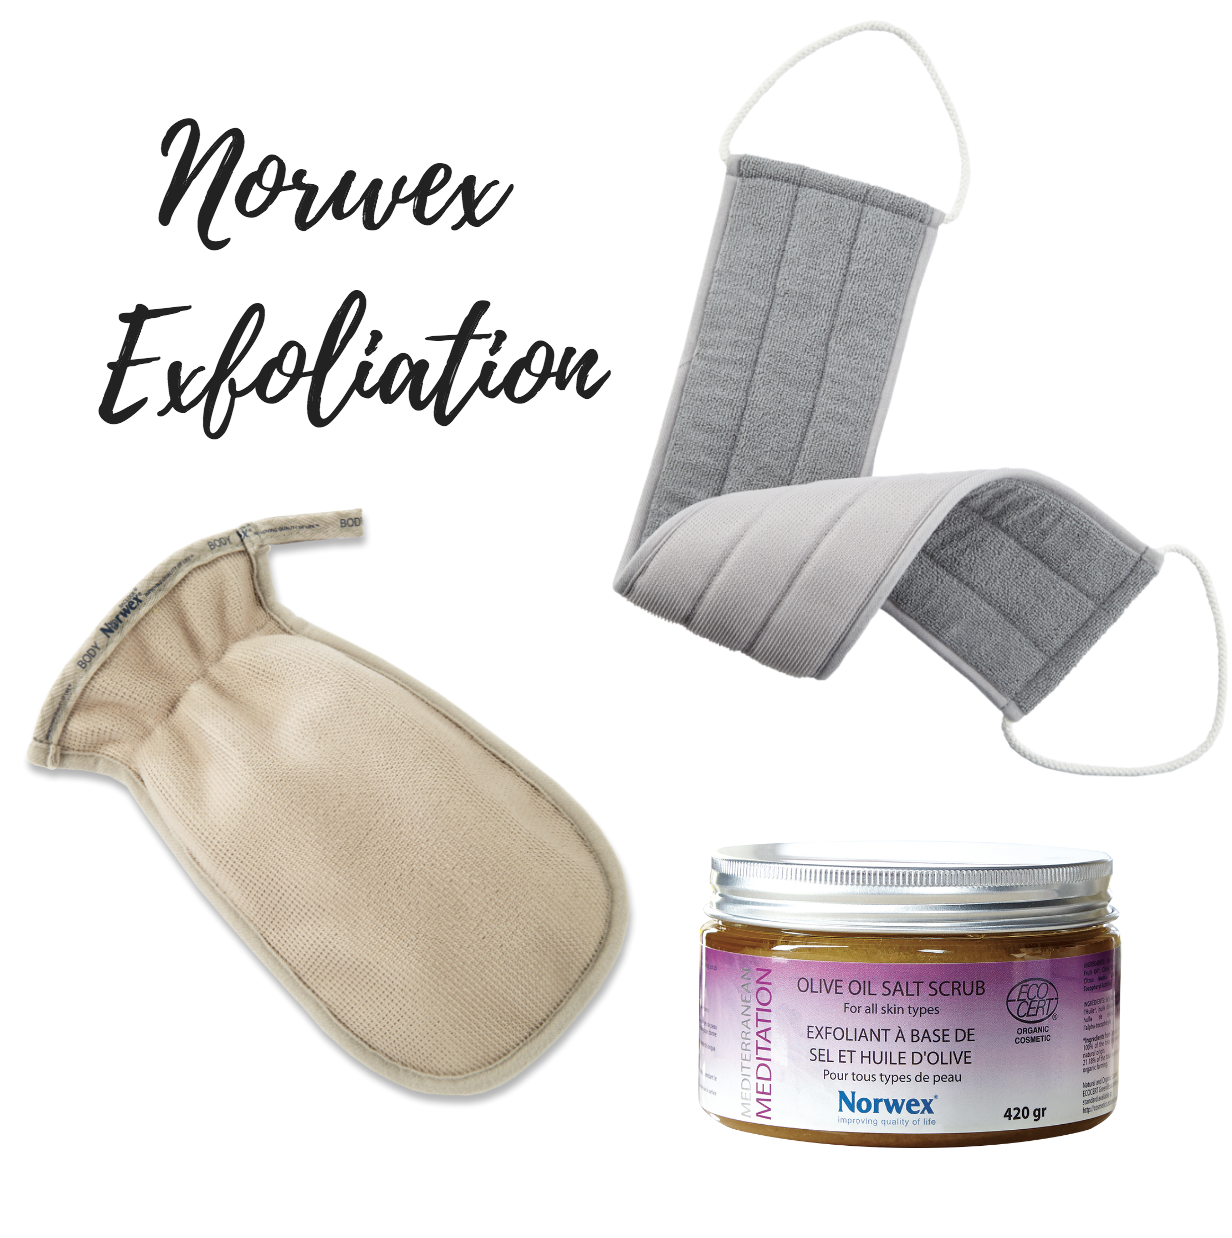 Your Own Norwex Exfoliation Station